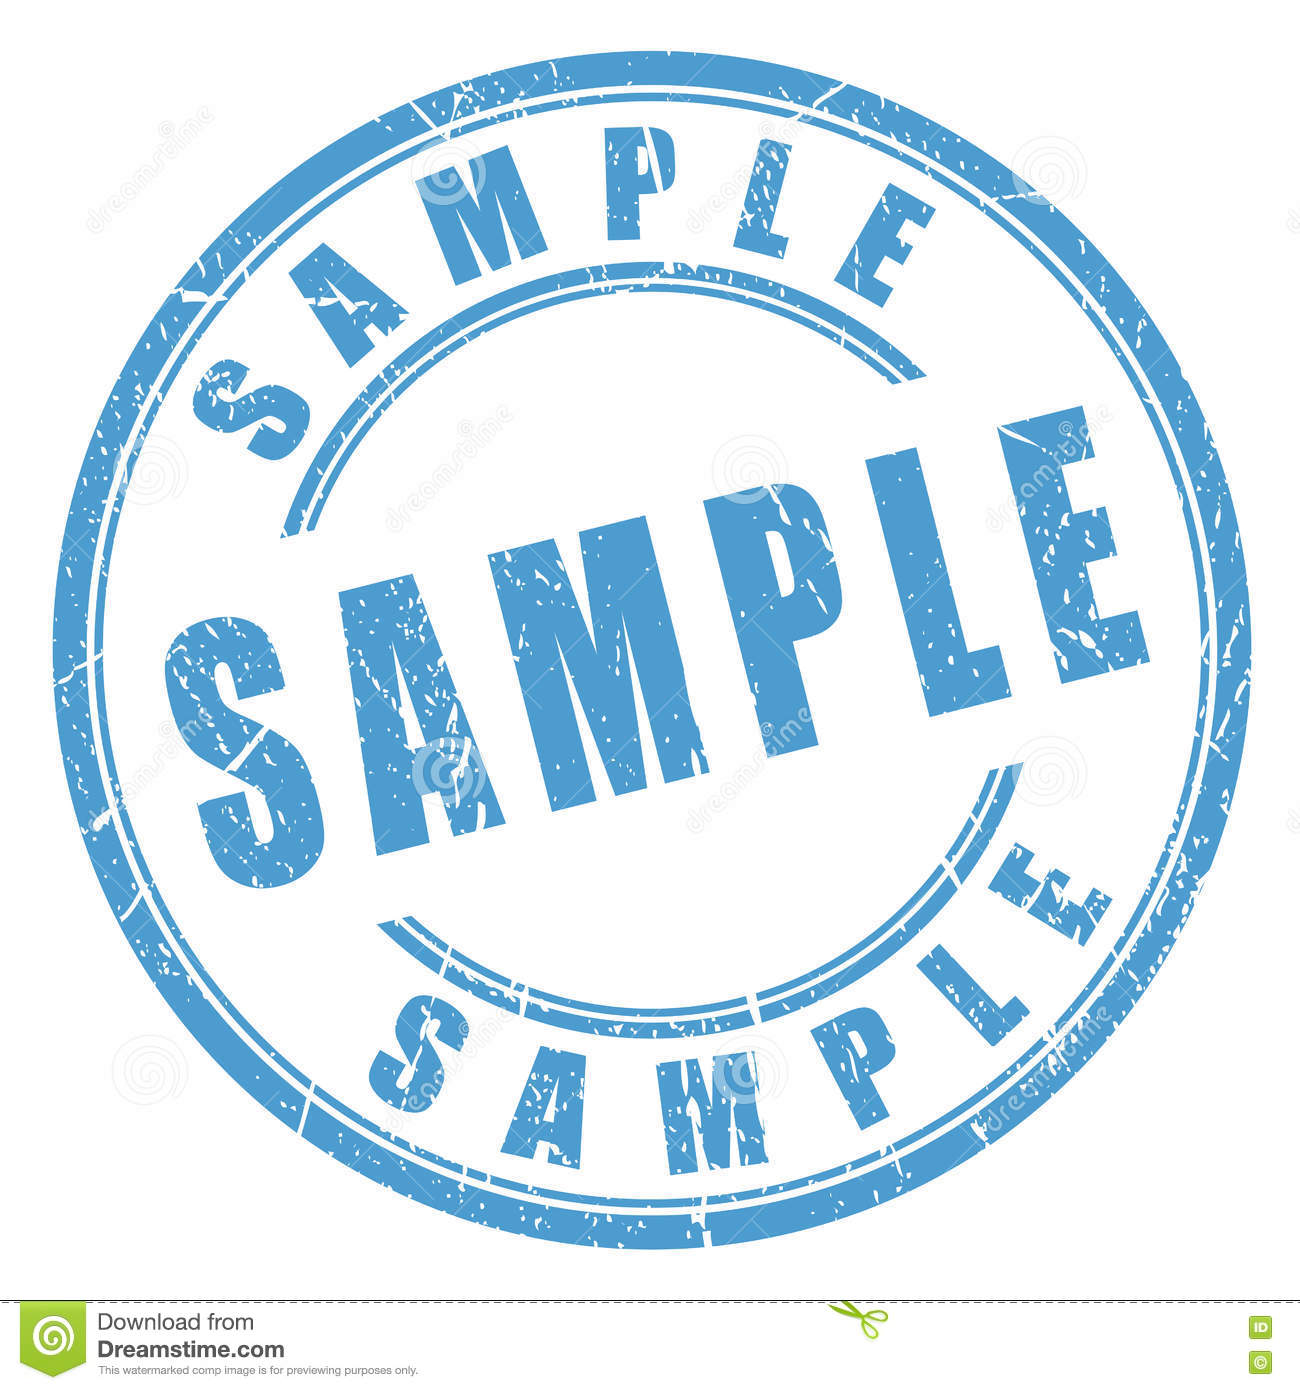 Free sample, try it now. Rubber stamp, grunge, isolated on white.